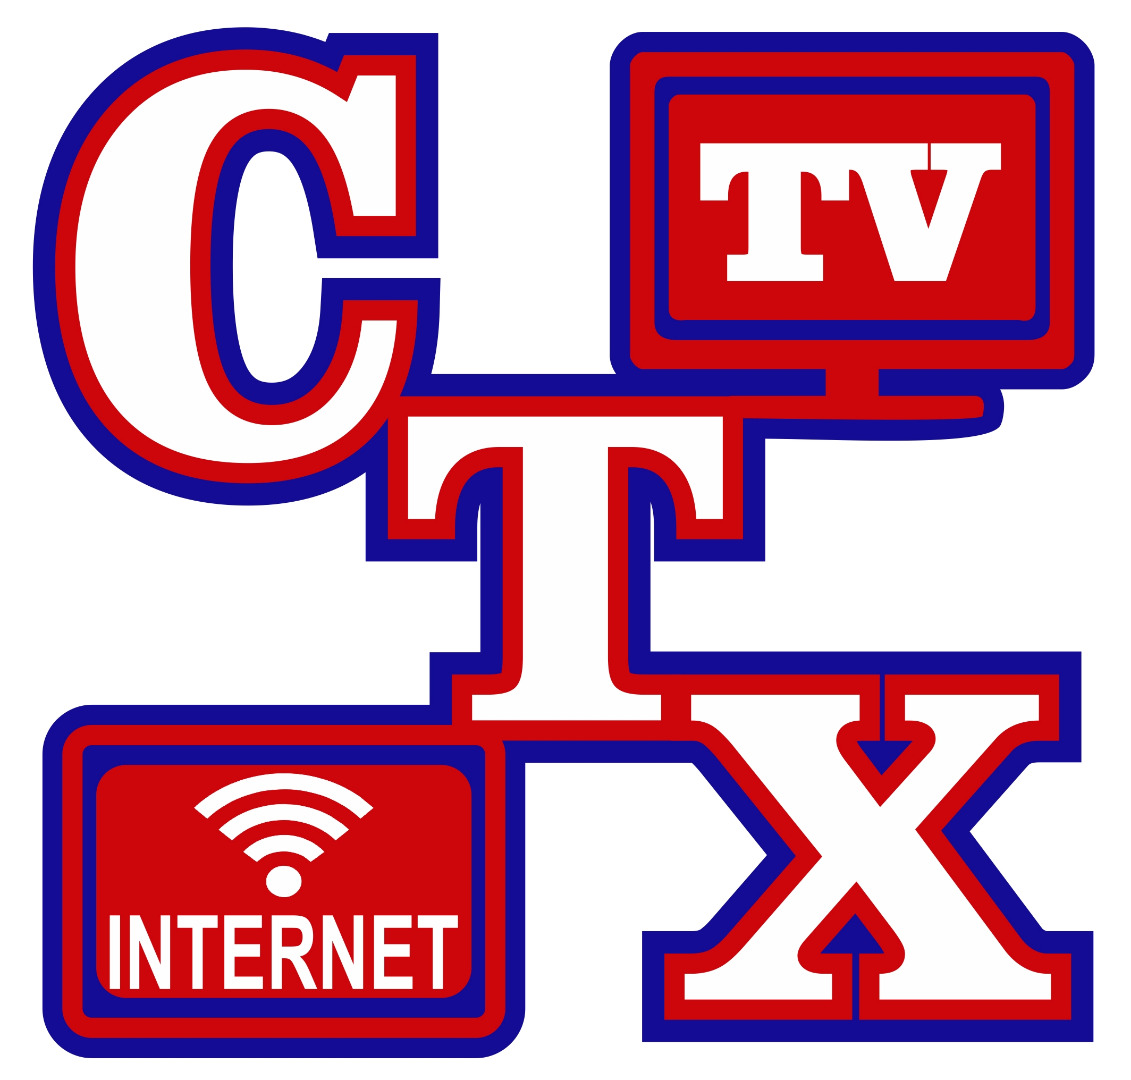 central tx tv logo2.jpg